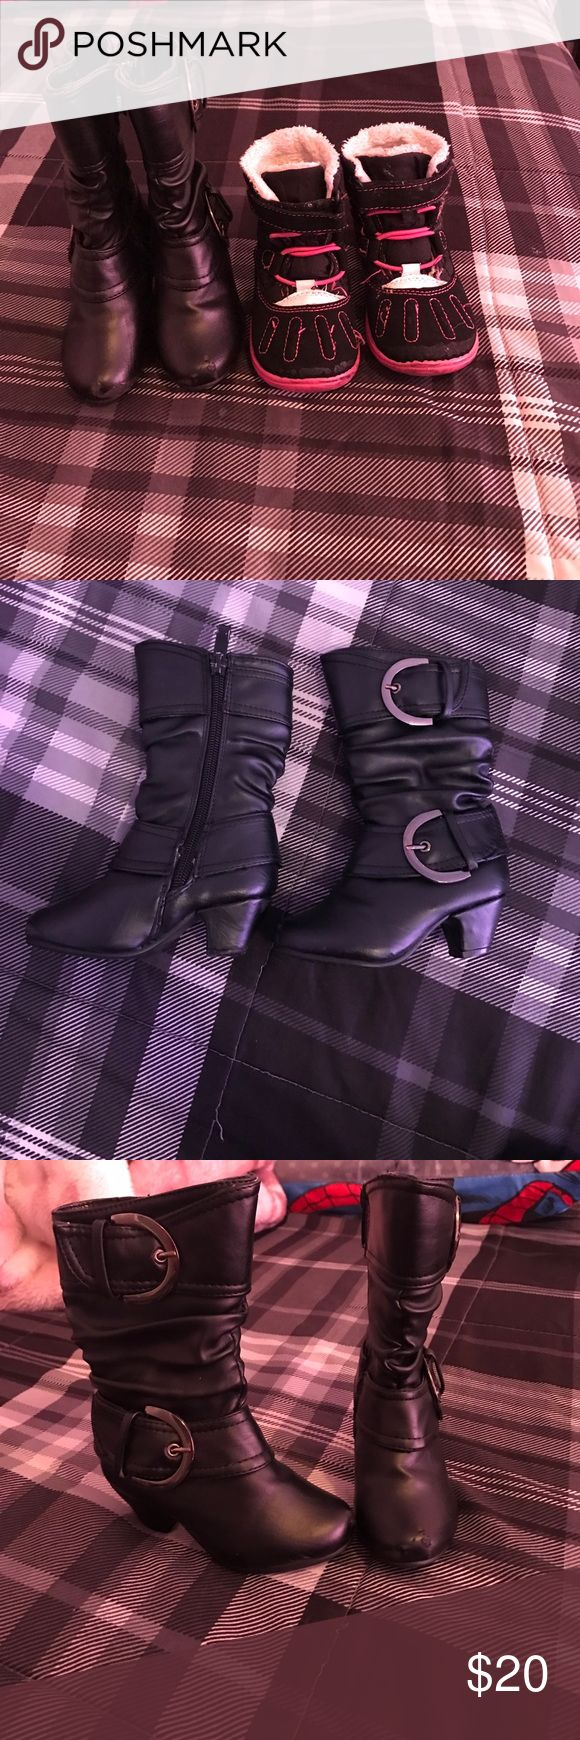 Toddler girl boots Both toddler girl boots sz 5 a little peeling on the toe area on tall black ones but other than that good condition and super cute Shoes Boots